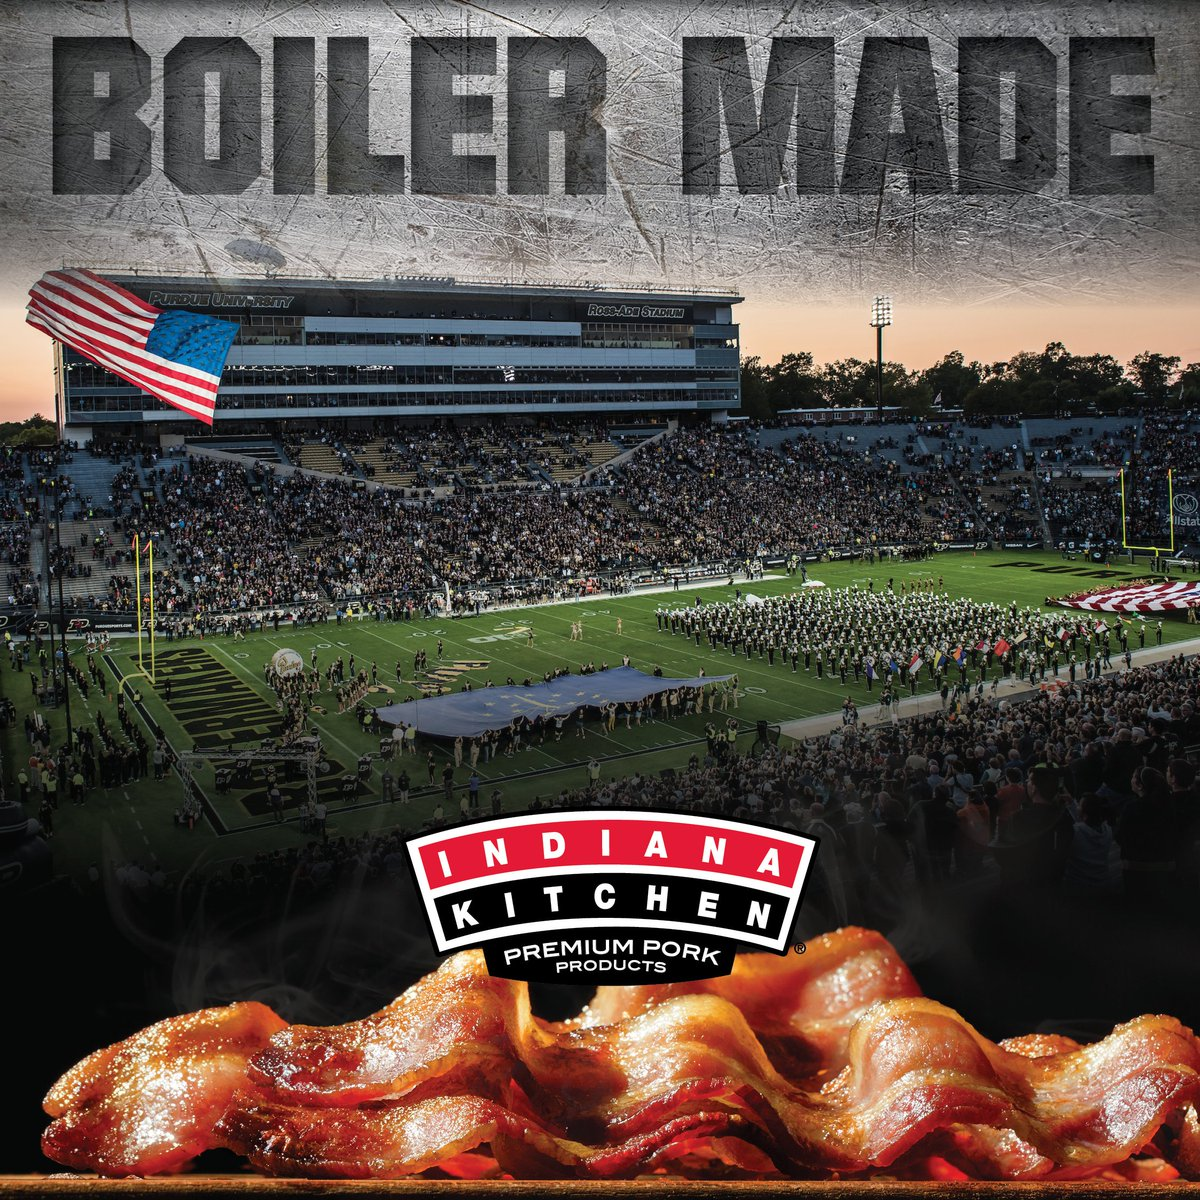 #BoilerUp! Hammer down!  The terrapins are coming to town. So is everybody else because it's Homecoming Weekend! Tune in this Saturday at noon to see the Boilermakers take on Maryland @TerpsFootball.   Indiana Kitchen Bacon--not just locally made. Boiler made. https://t.co/0naEXxsO2M